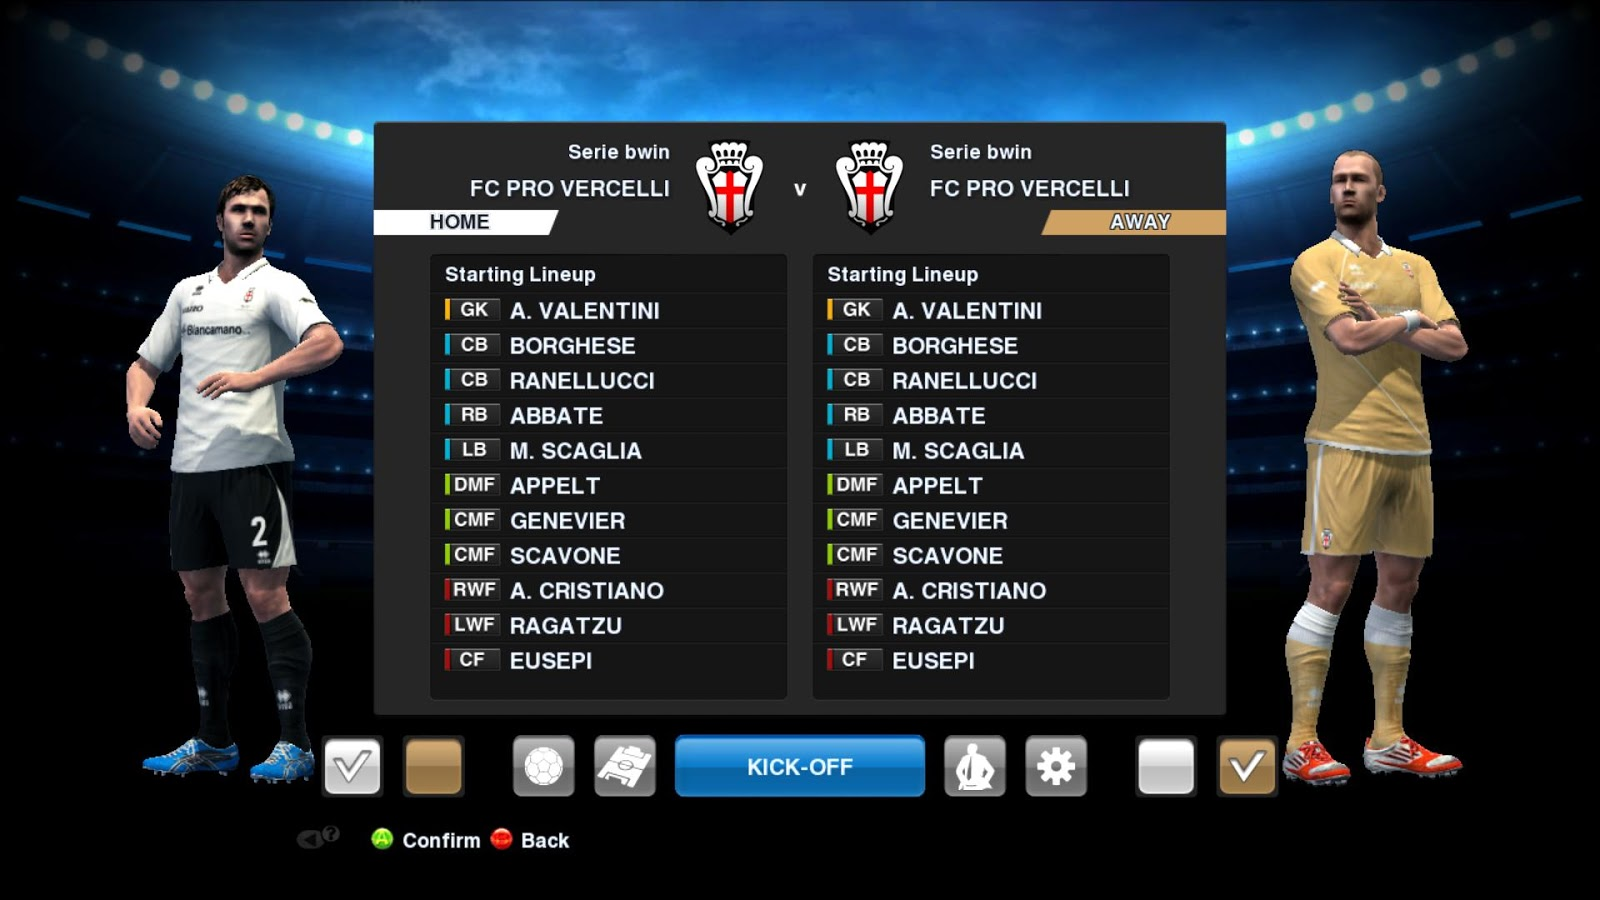 Download Patch Pes 2012 Terbaru - muvichicago